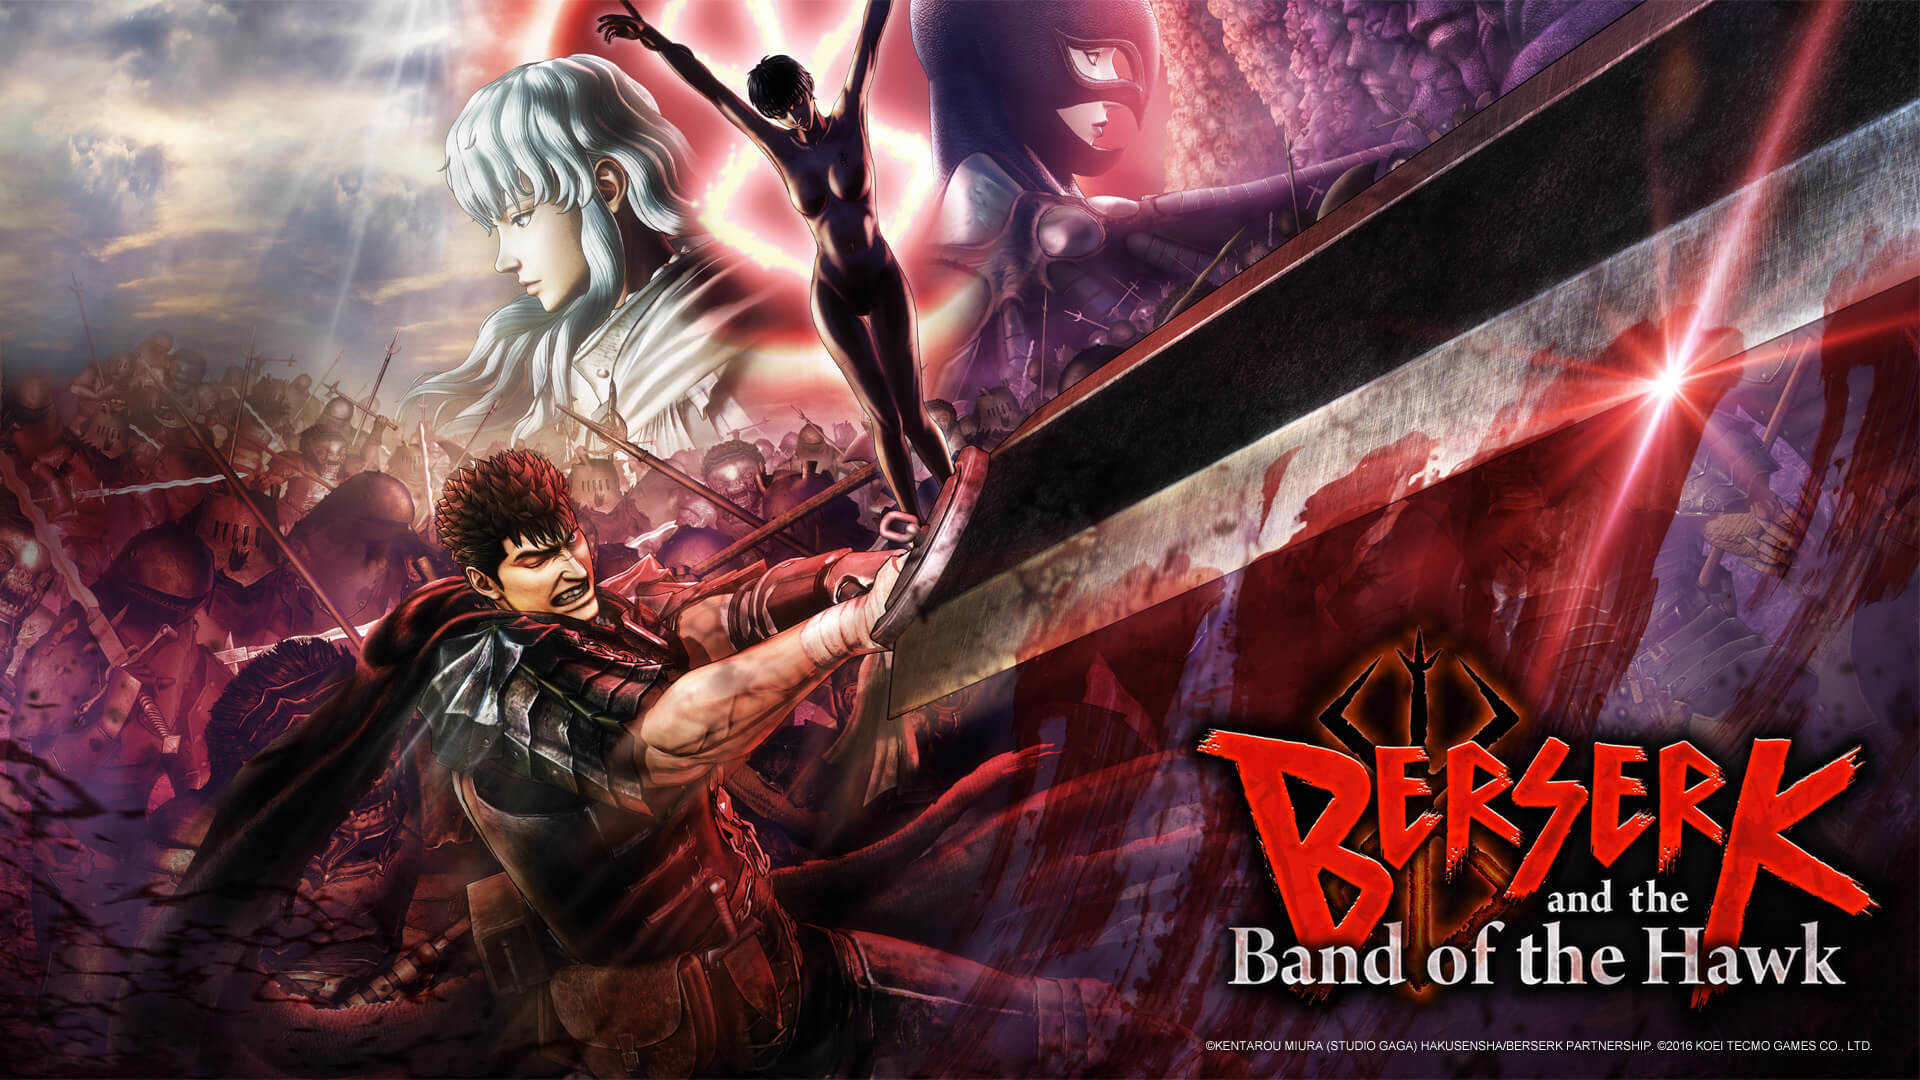 Res: 1920x1080, Berserk and the Band of the Hawk Review